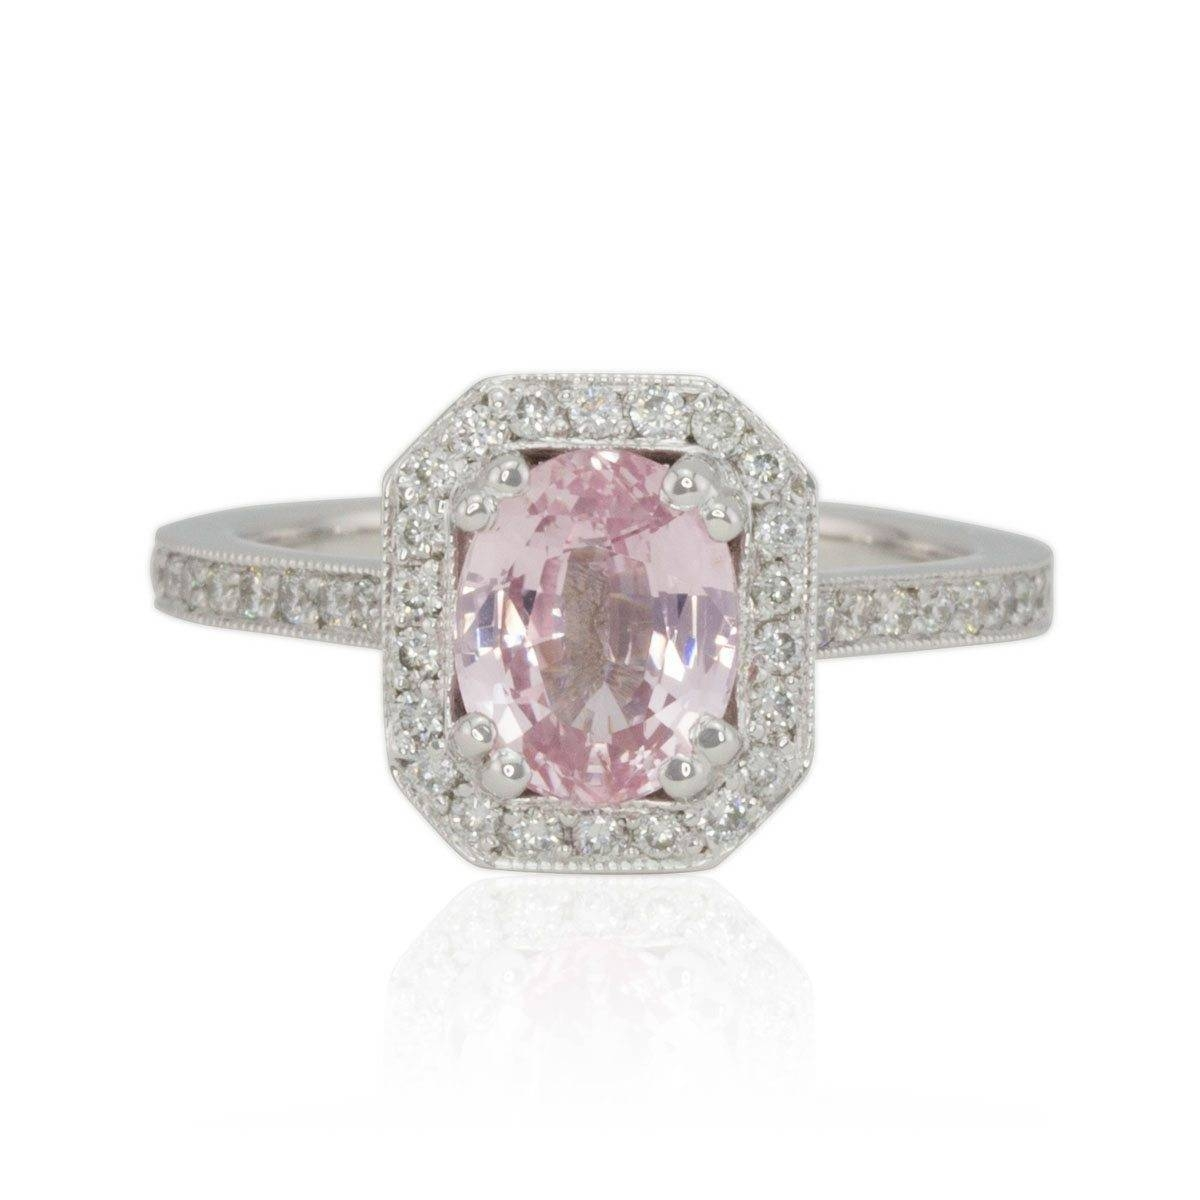 Vintage Look Oval Pink Sapphire Engagement Ring With Octagon Halo Intended For Pink Sapphire Engagement Rings (View 14 of 15)